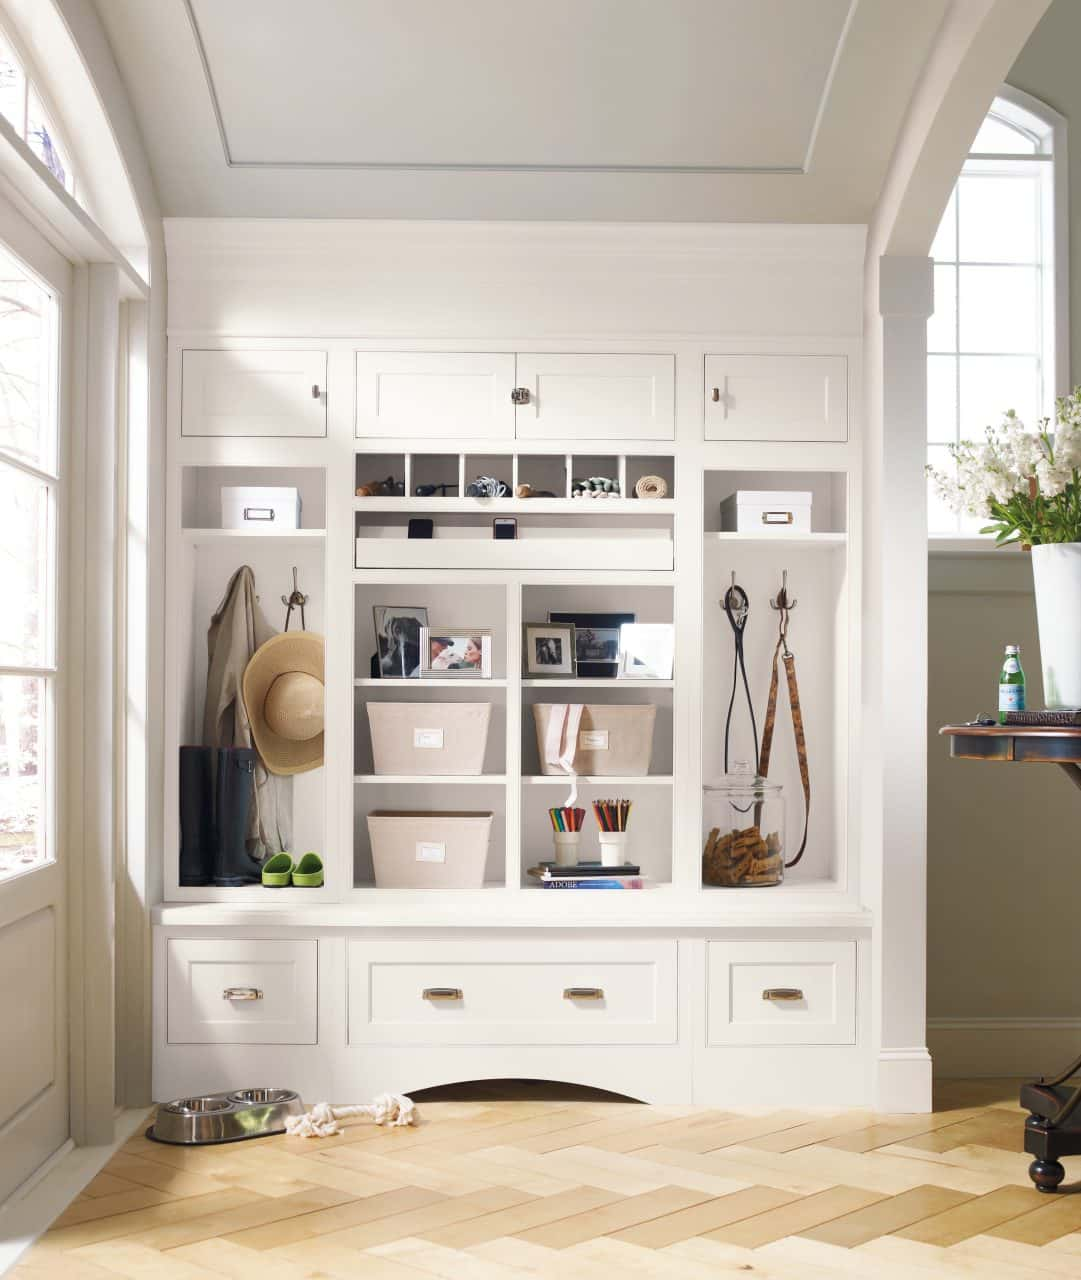 Foyer Built In Cabinets : Kitchen remodel design cabinets nj